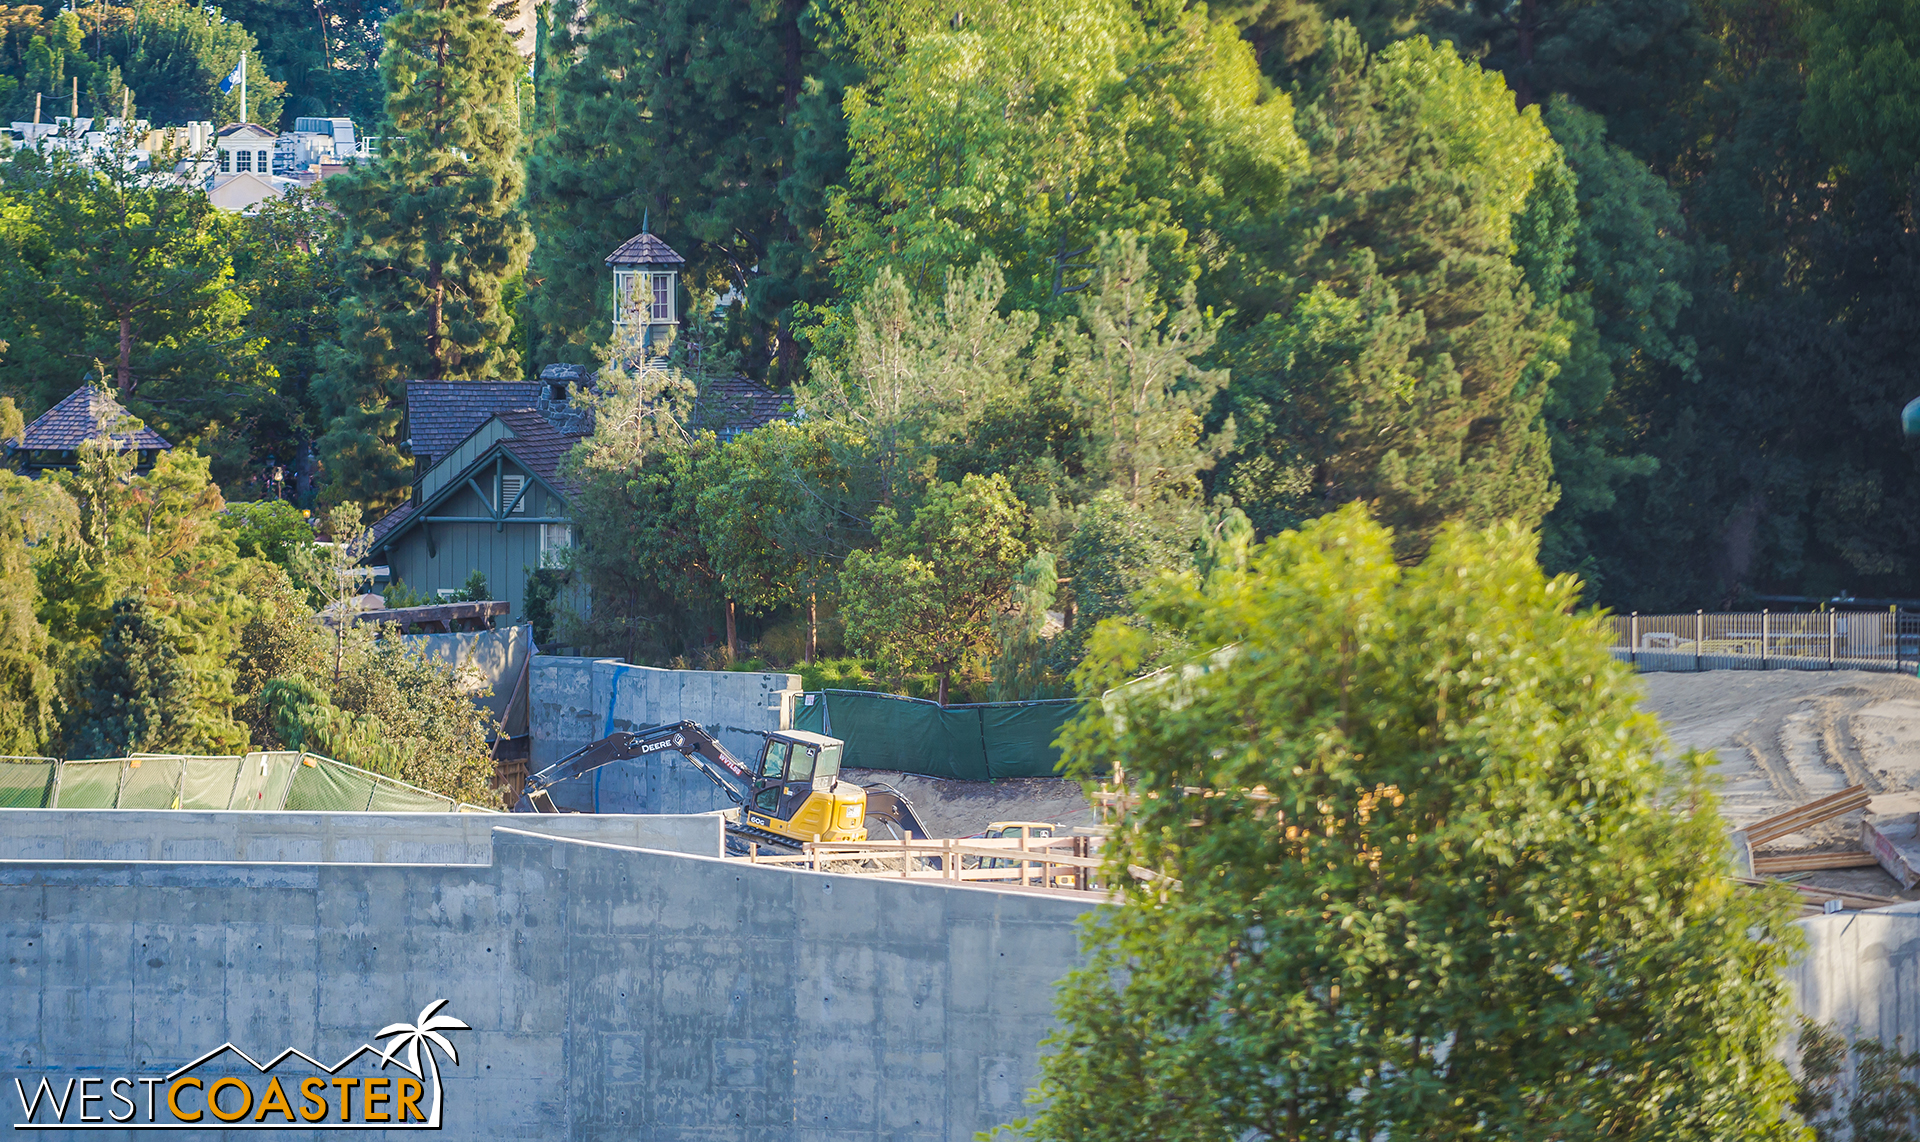 We can see some bit of earthwork at the Critter Country entrance.  Some new concrete forms being laid down.